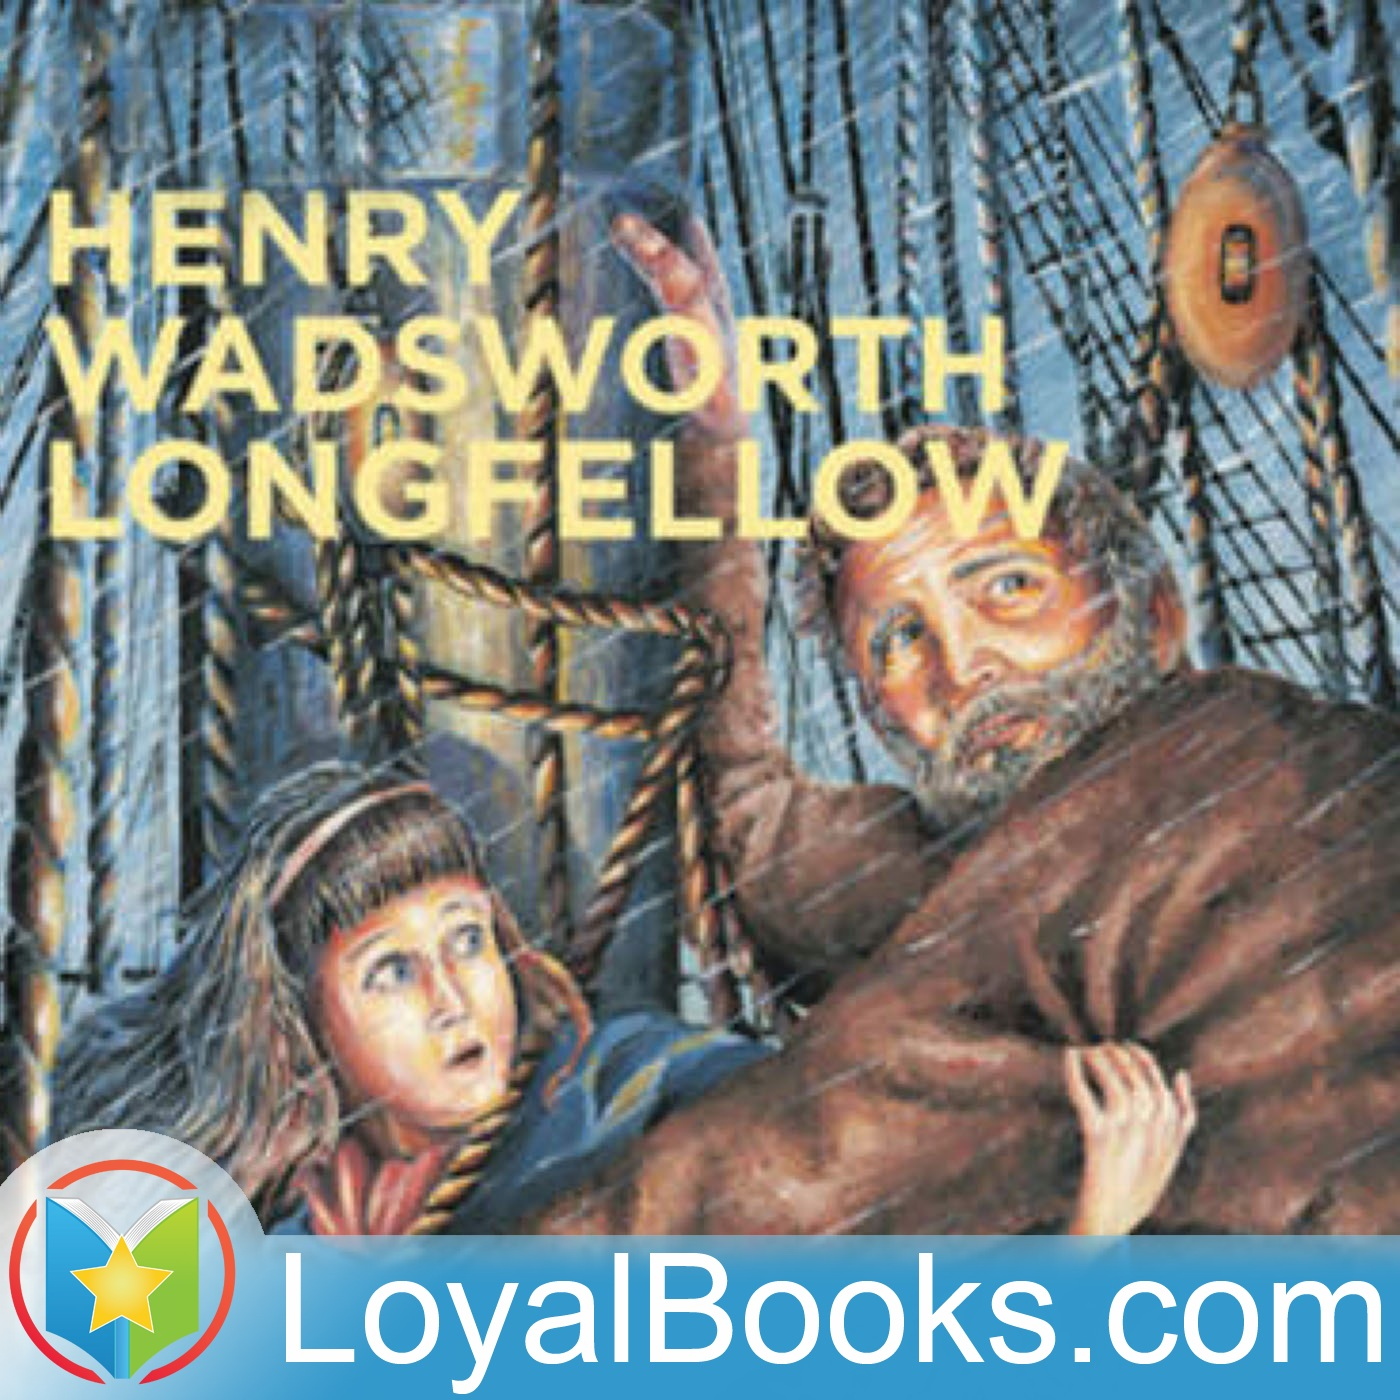 <![CDATA[Henry Wadsworth Longfellow Collection Vol. 001 by Henry Wadsworth Longfellow]]>